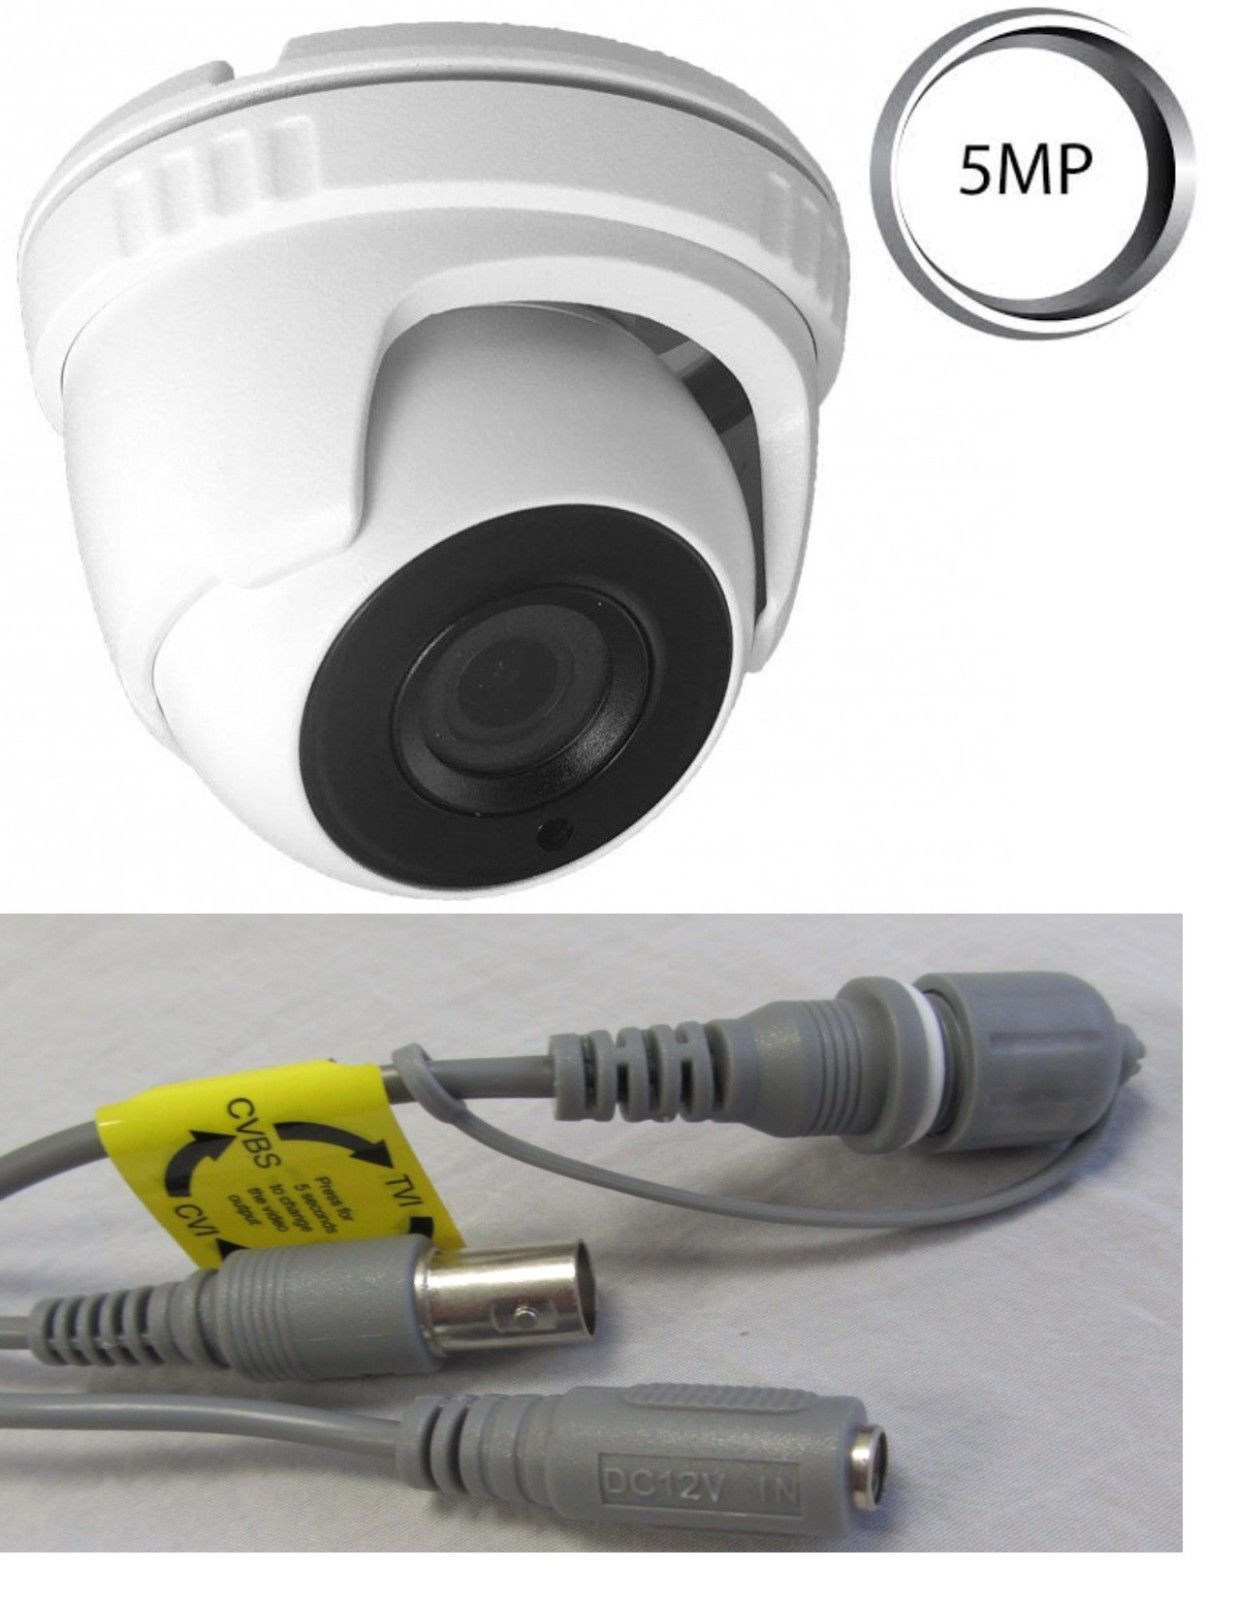 Matrix IR Turret Dome Camera HD-TVI 5MP(2560x1944) 2.8mm Wide